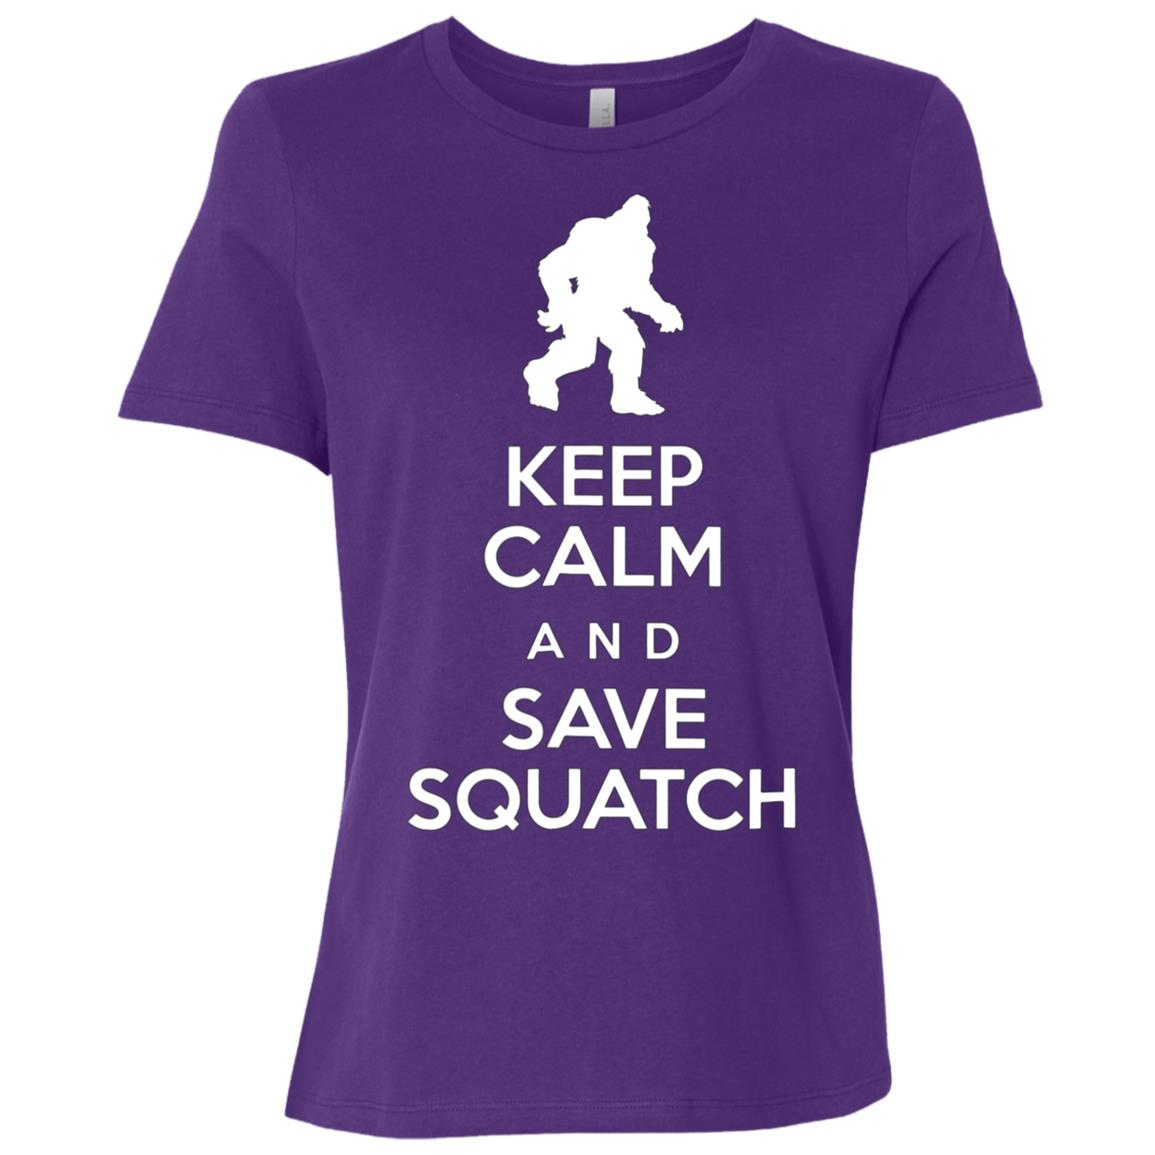 Keep Calm and Save Squatch Protect Bigfoot Yeti Women Short Sleeve T-Shirt